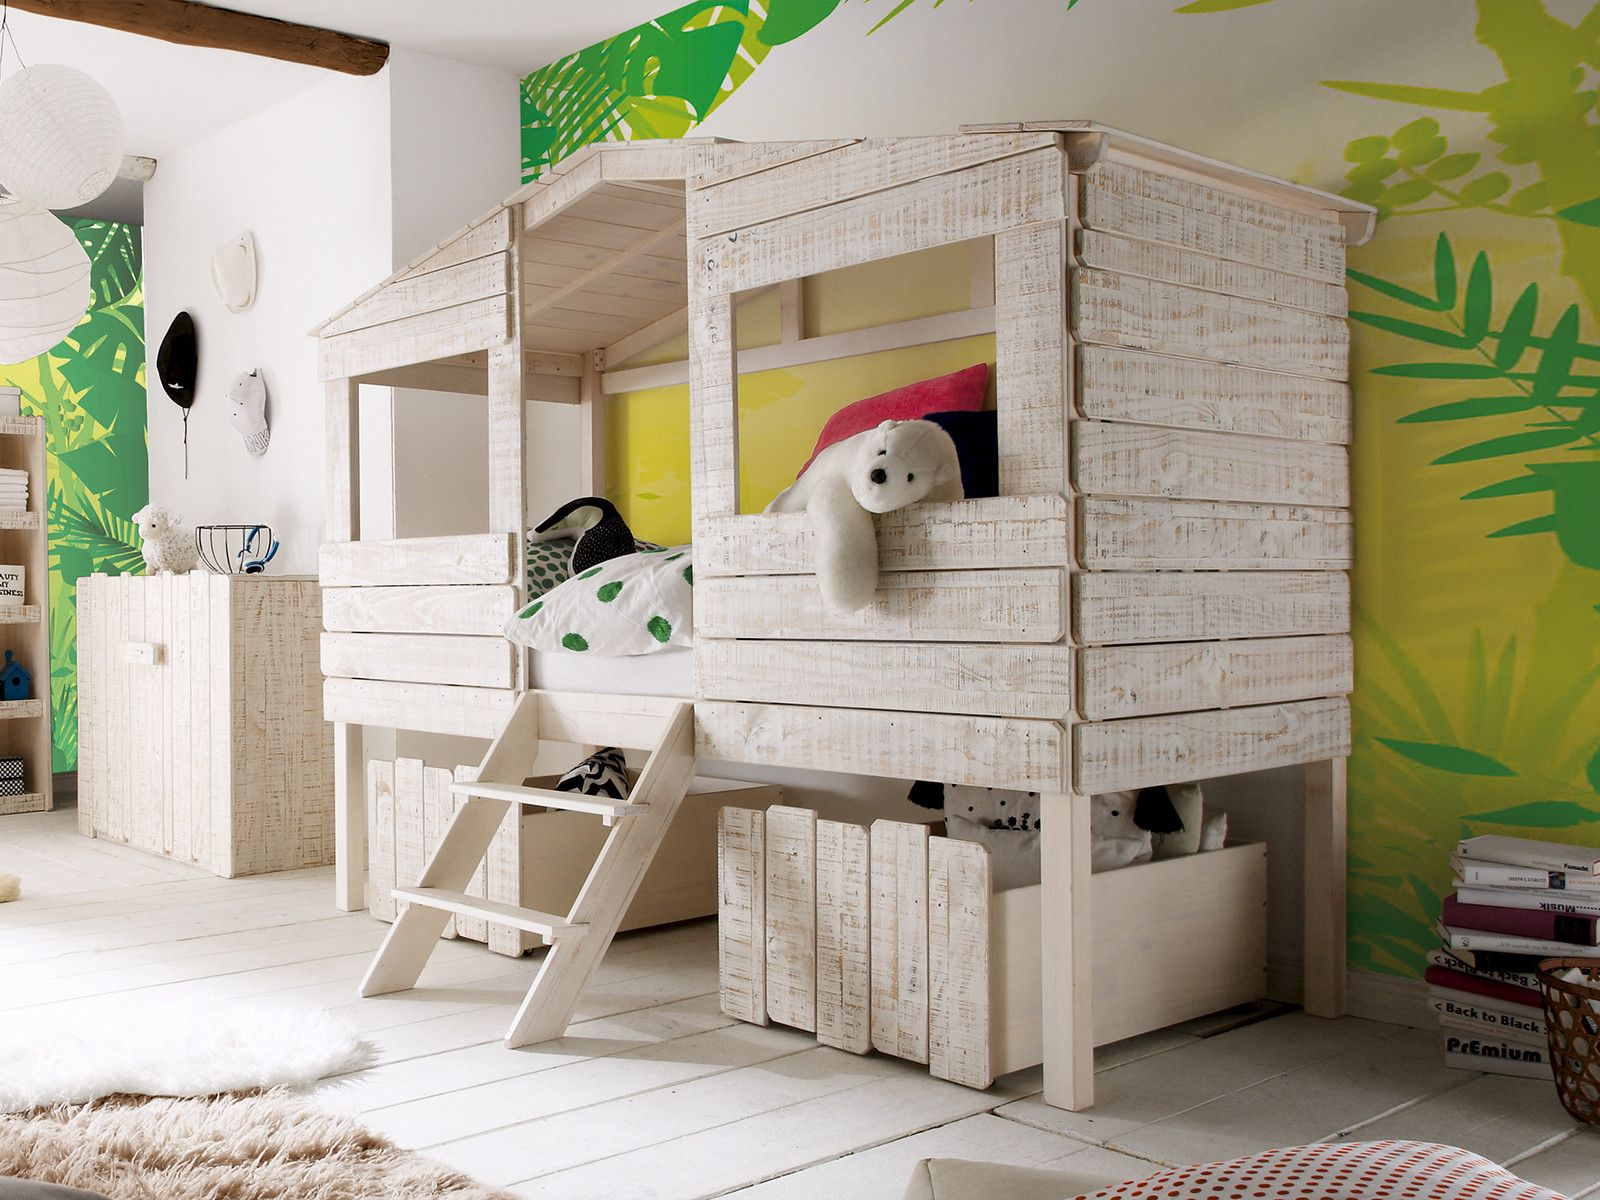 kinderbett safari zuk nftige projekte pinterest kinderbetten kinderzimmer und ideen f rs. Black Bedroom Furniture Sets. Home Design Ideas